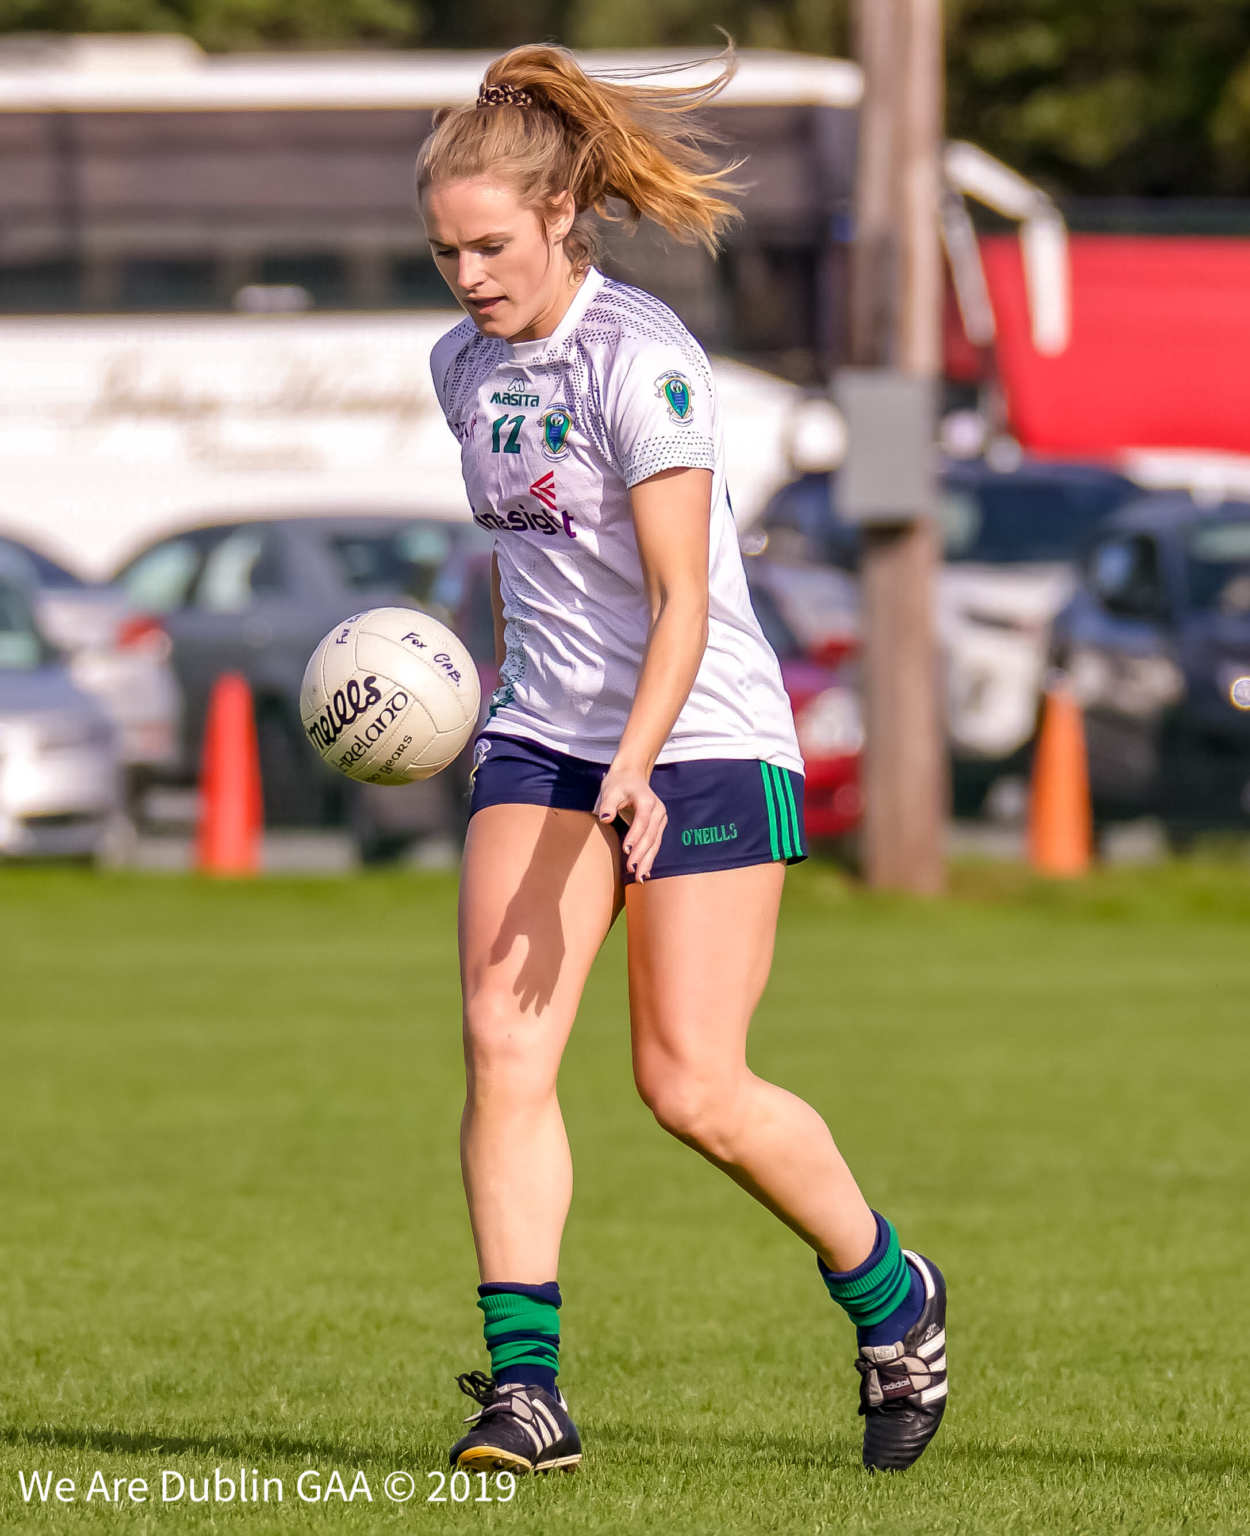 A Ladies footballer from Foxrock Cabinteely who play Sarsfields in the Leinster Senior Club Championship Final this coming Sunday.